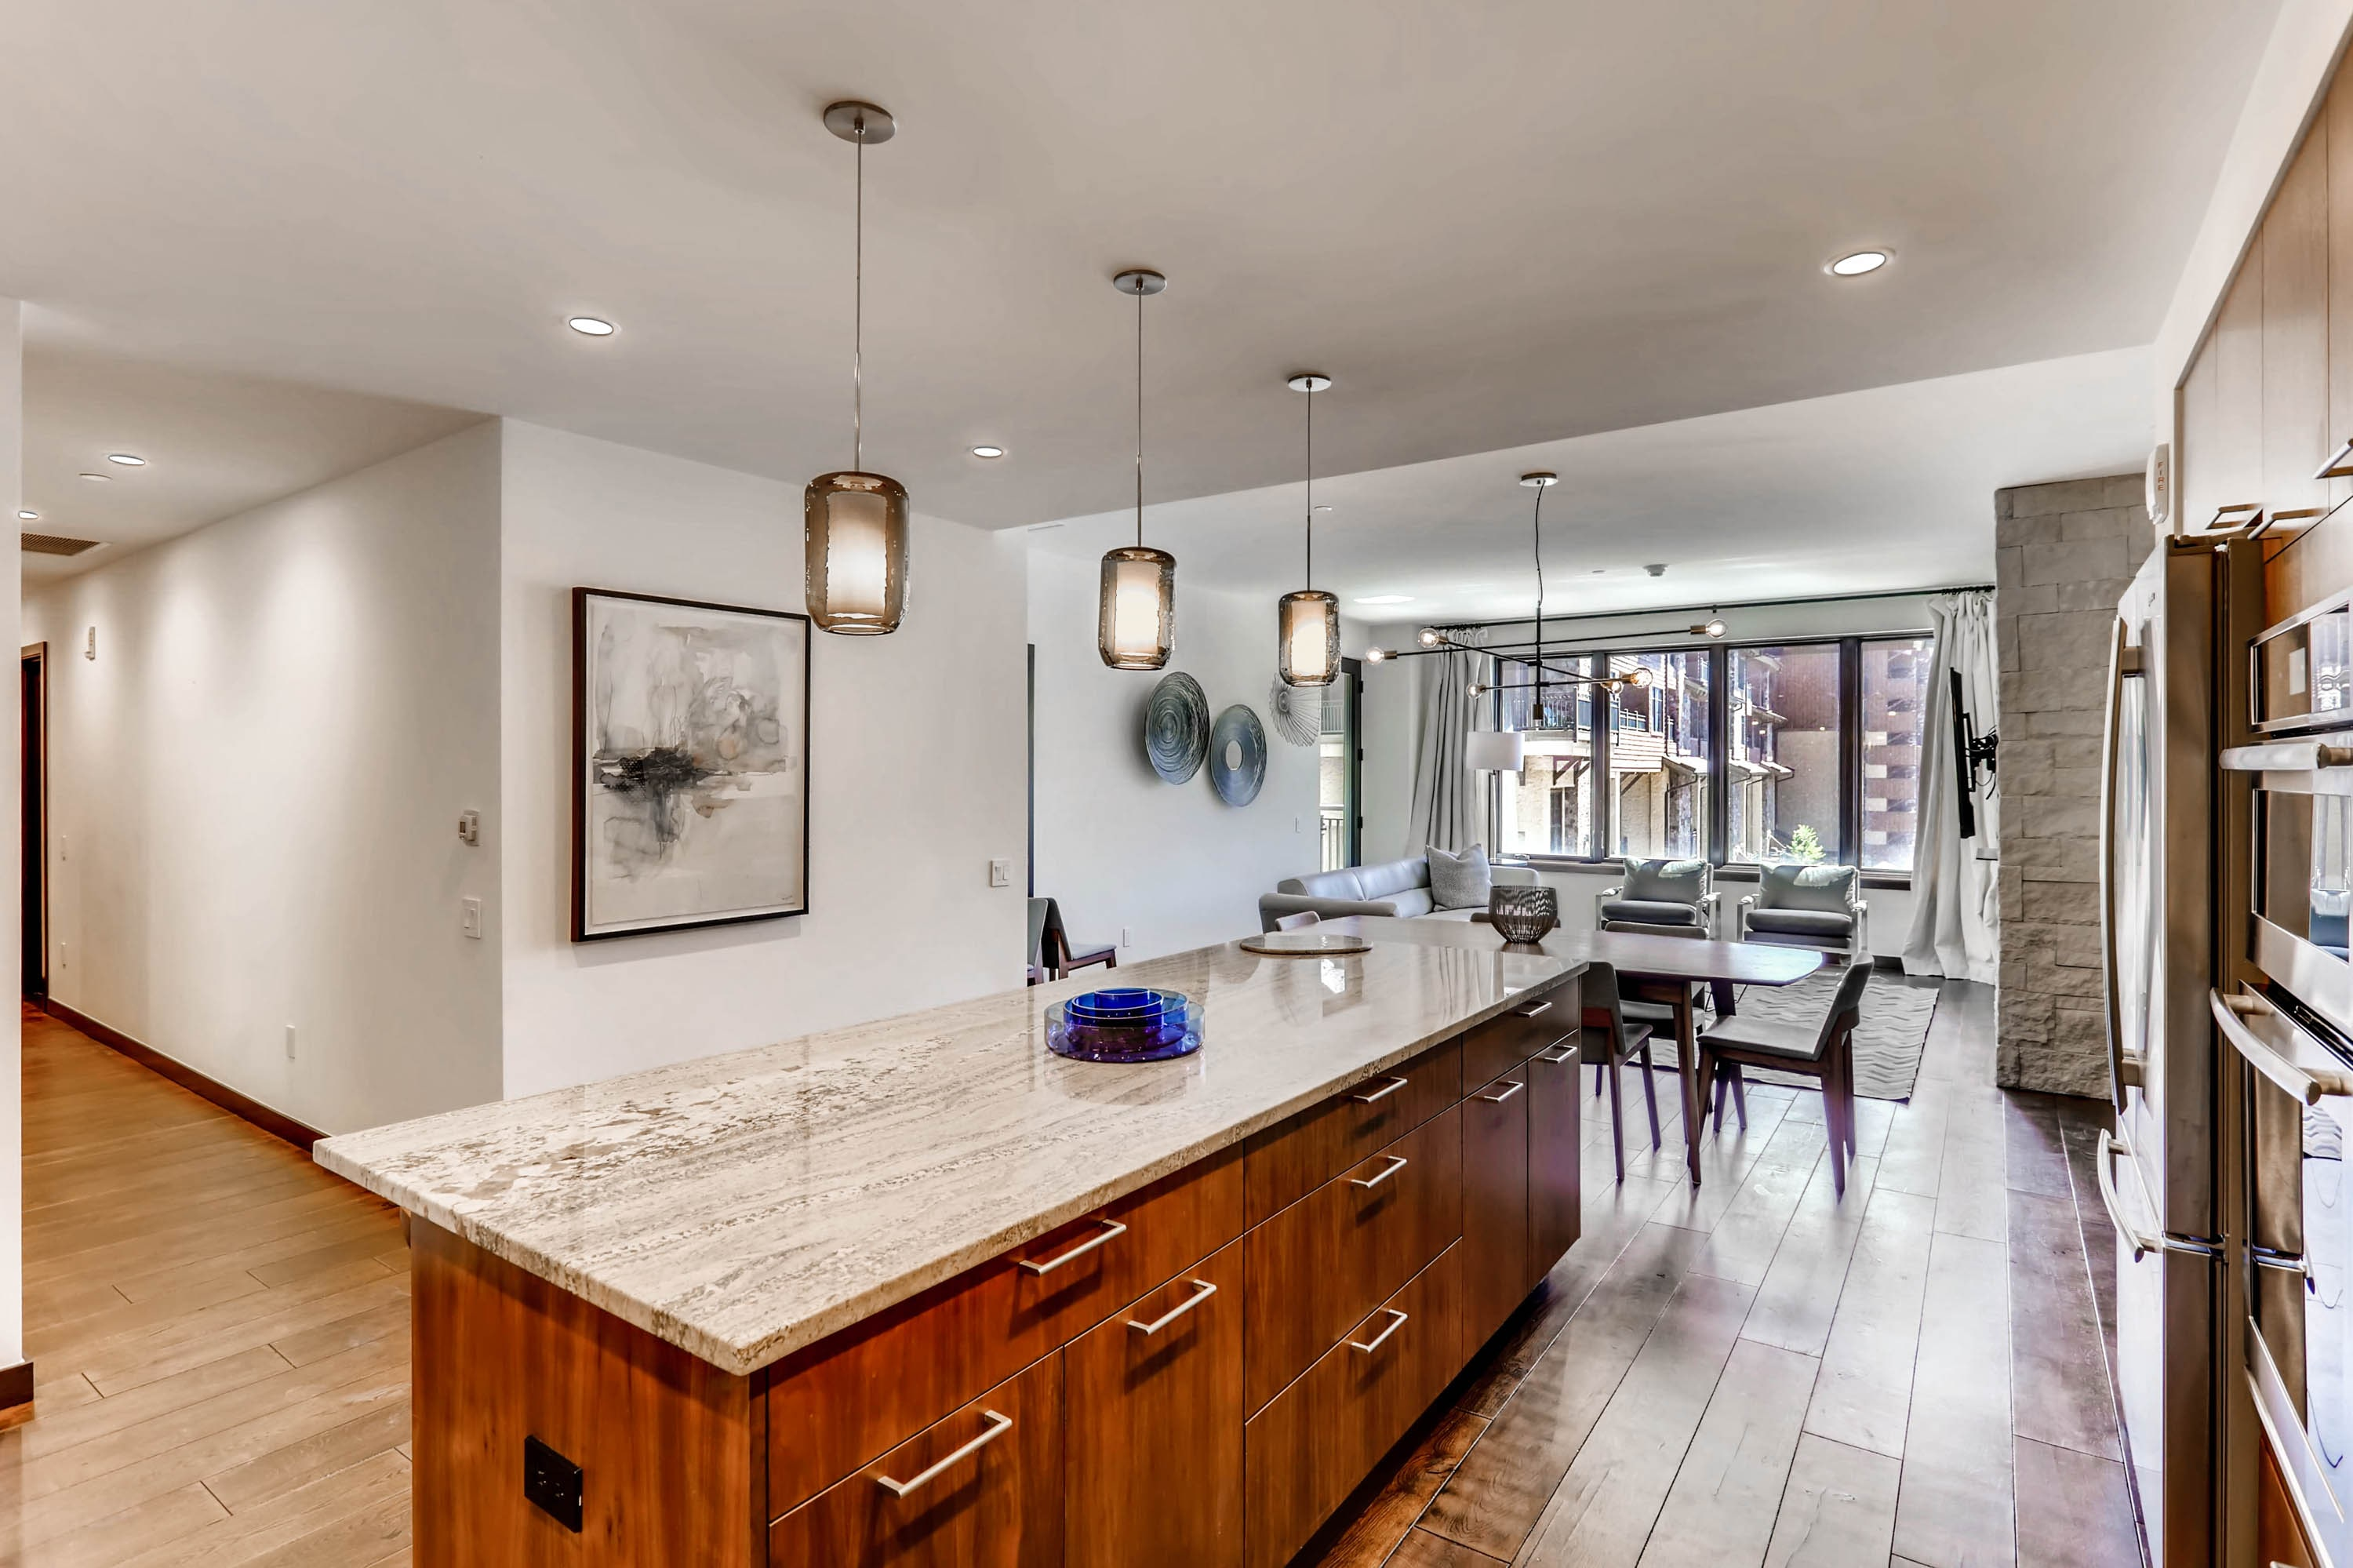 Property Image 2 - Stylish Modernized Residence with the Vail Mountain Views You Crave